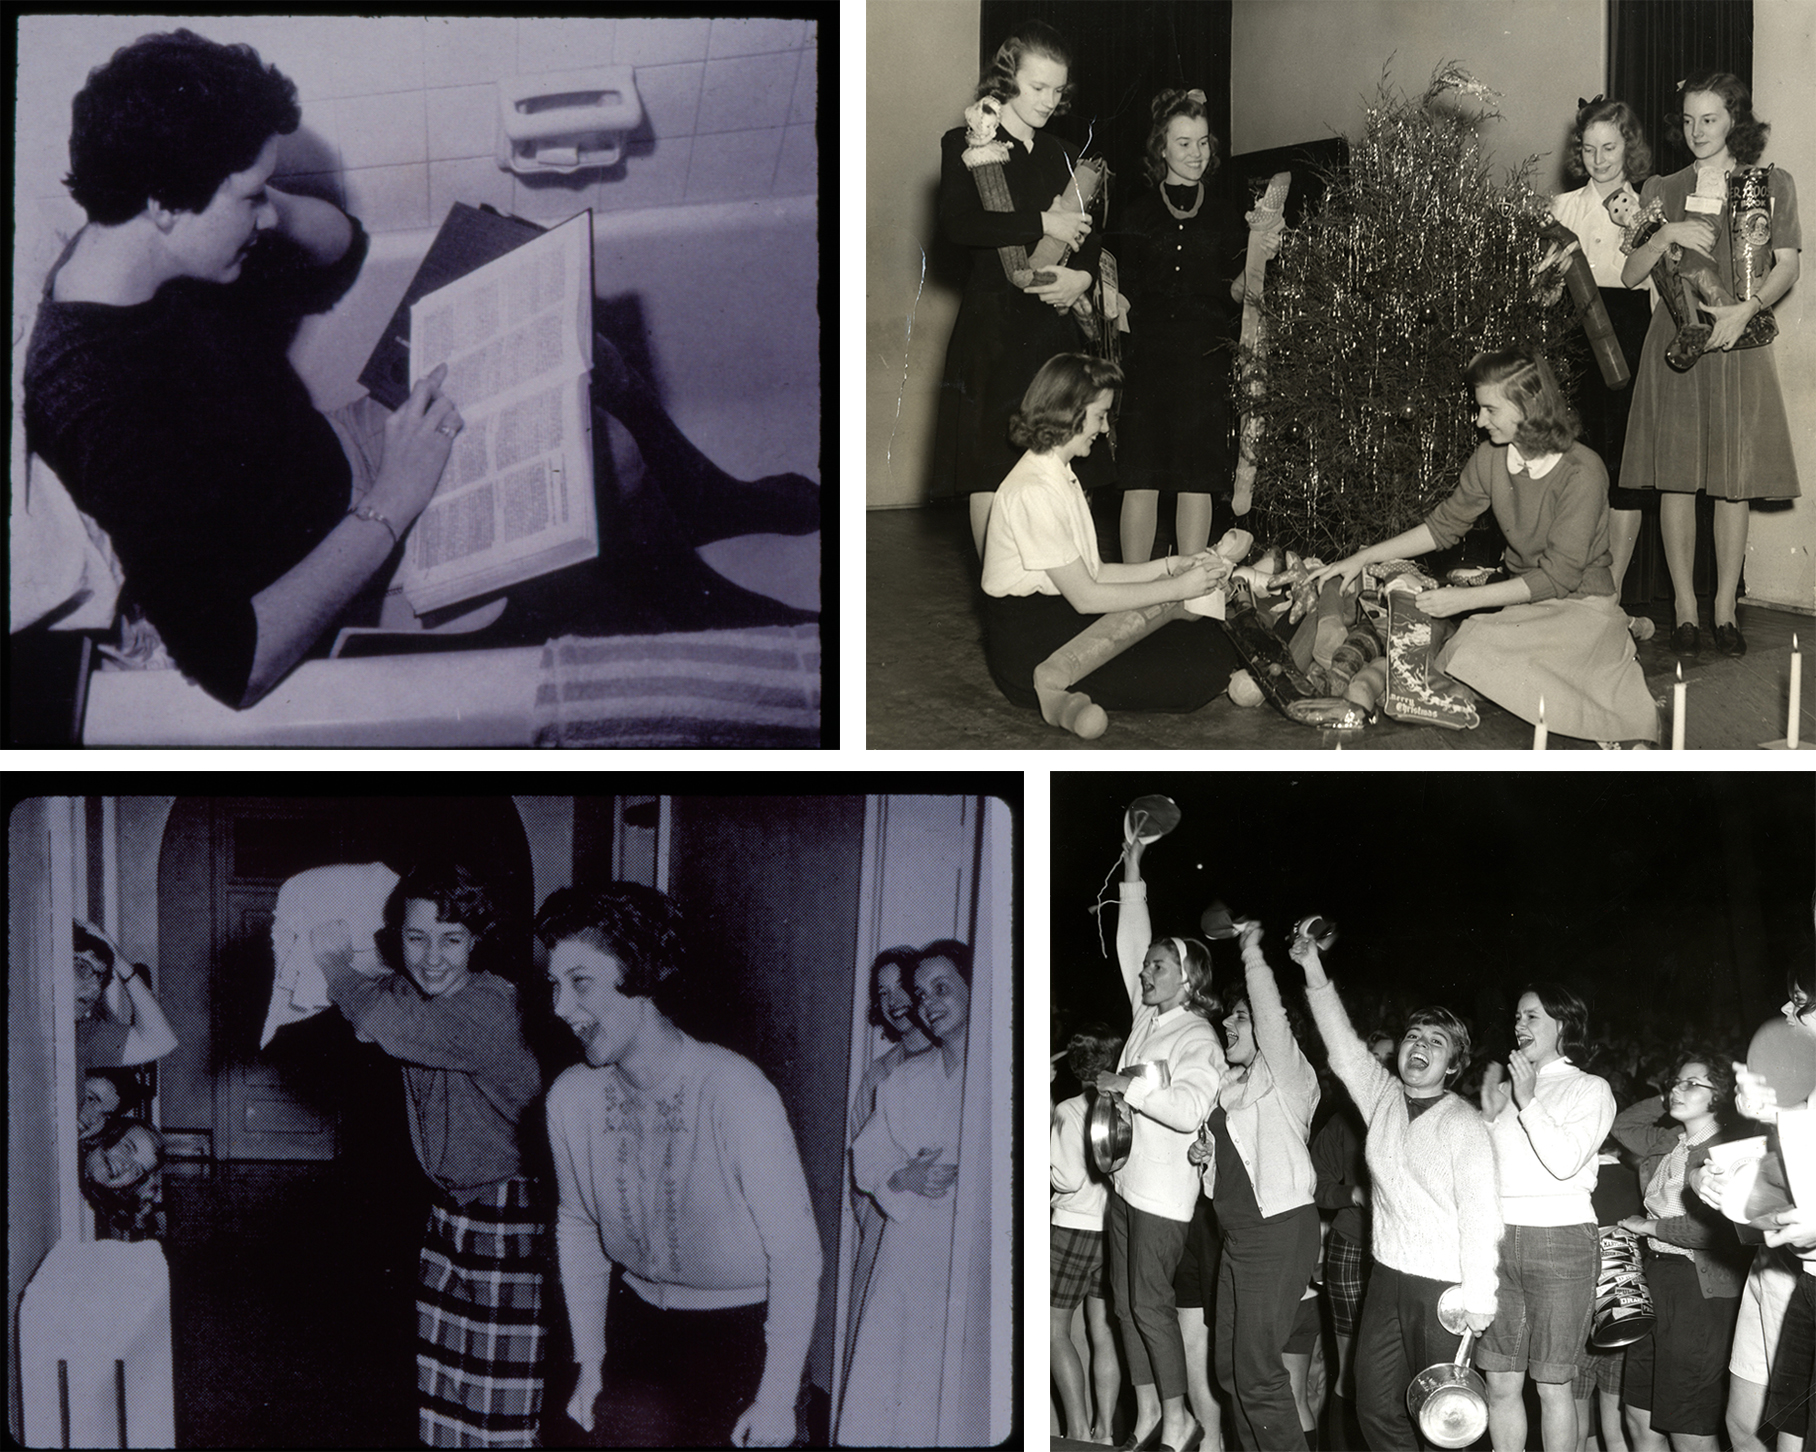 Figure 3. From top left to bottom right: 1958, a student reads in a bathtub; 1942, students stuff Christmas stockings; 1962, a pillow fight; 1963, students get rid of their beanies. https://umw.access.preservica.com.